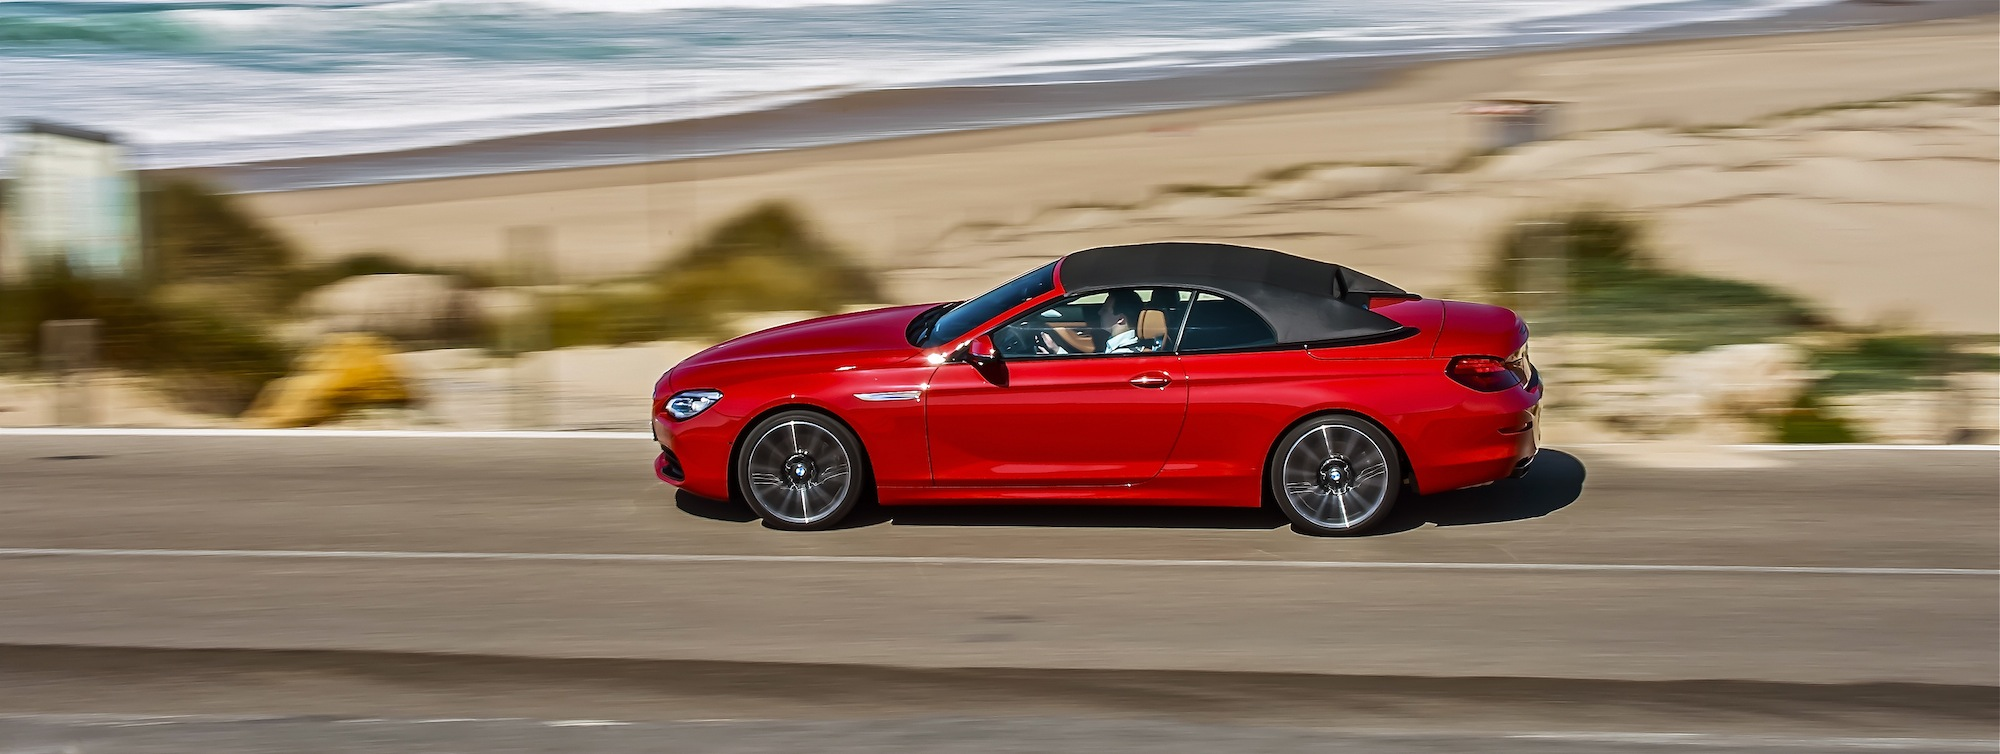 8 Of The Best BMW Convertible Lease Deals For May 2018